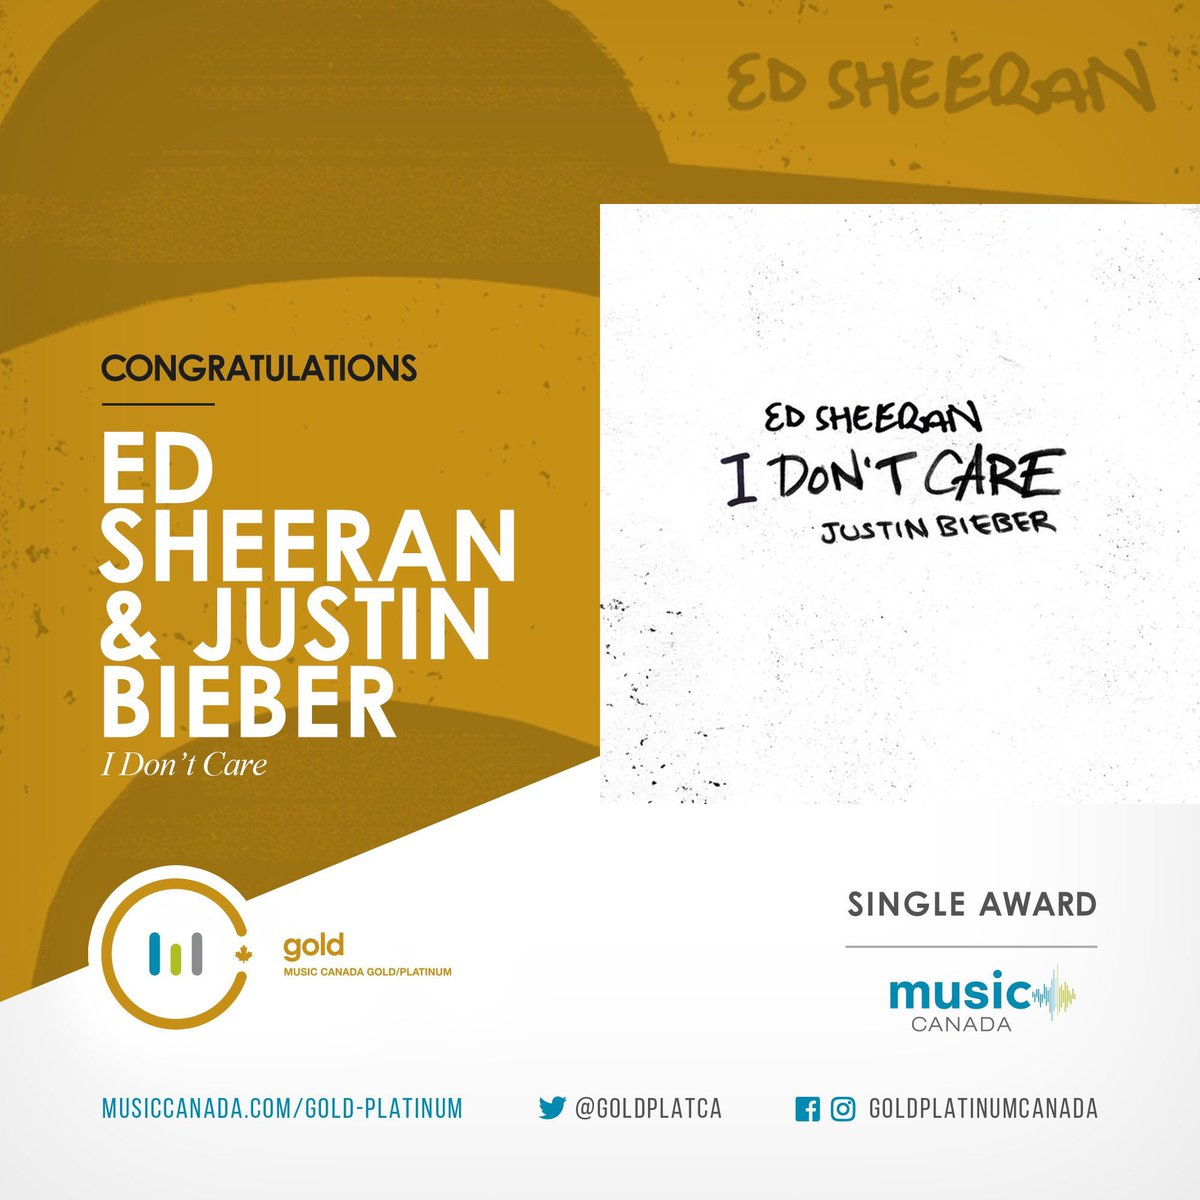 """Ed Sheeran and Justin Bieber's collaboration, """"I Don't Care"""" has been officially certified Gold in Canada! Congratulations! <br>http://pic.twitter.com/nKWvUsa51g"""